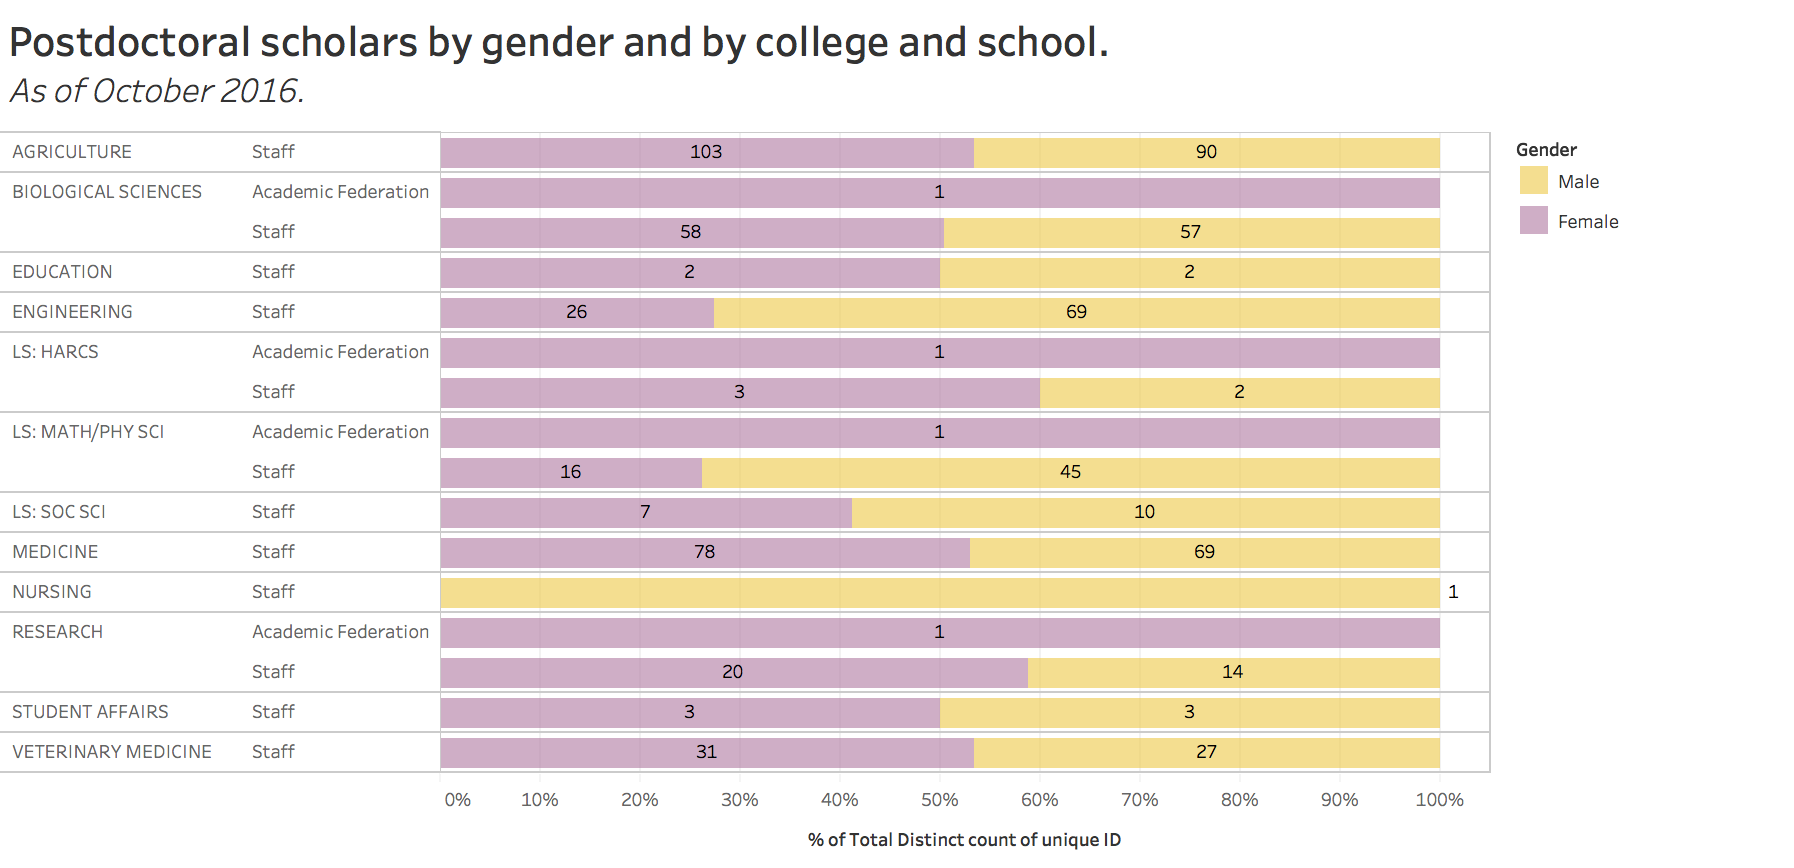 postdocs by gender and by college and school, october 2016